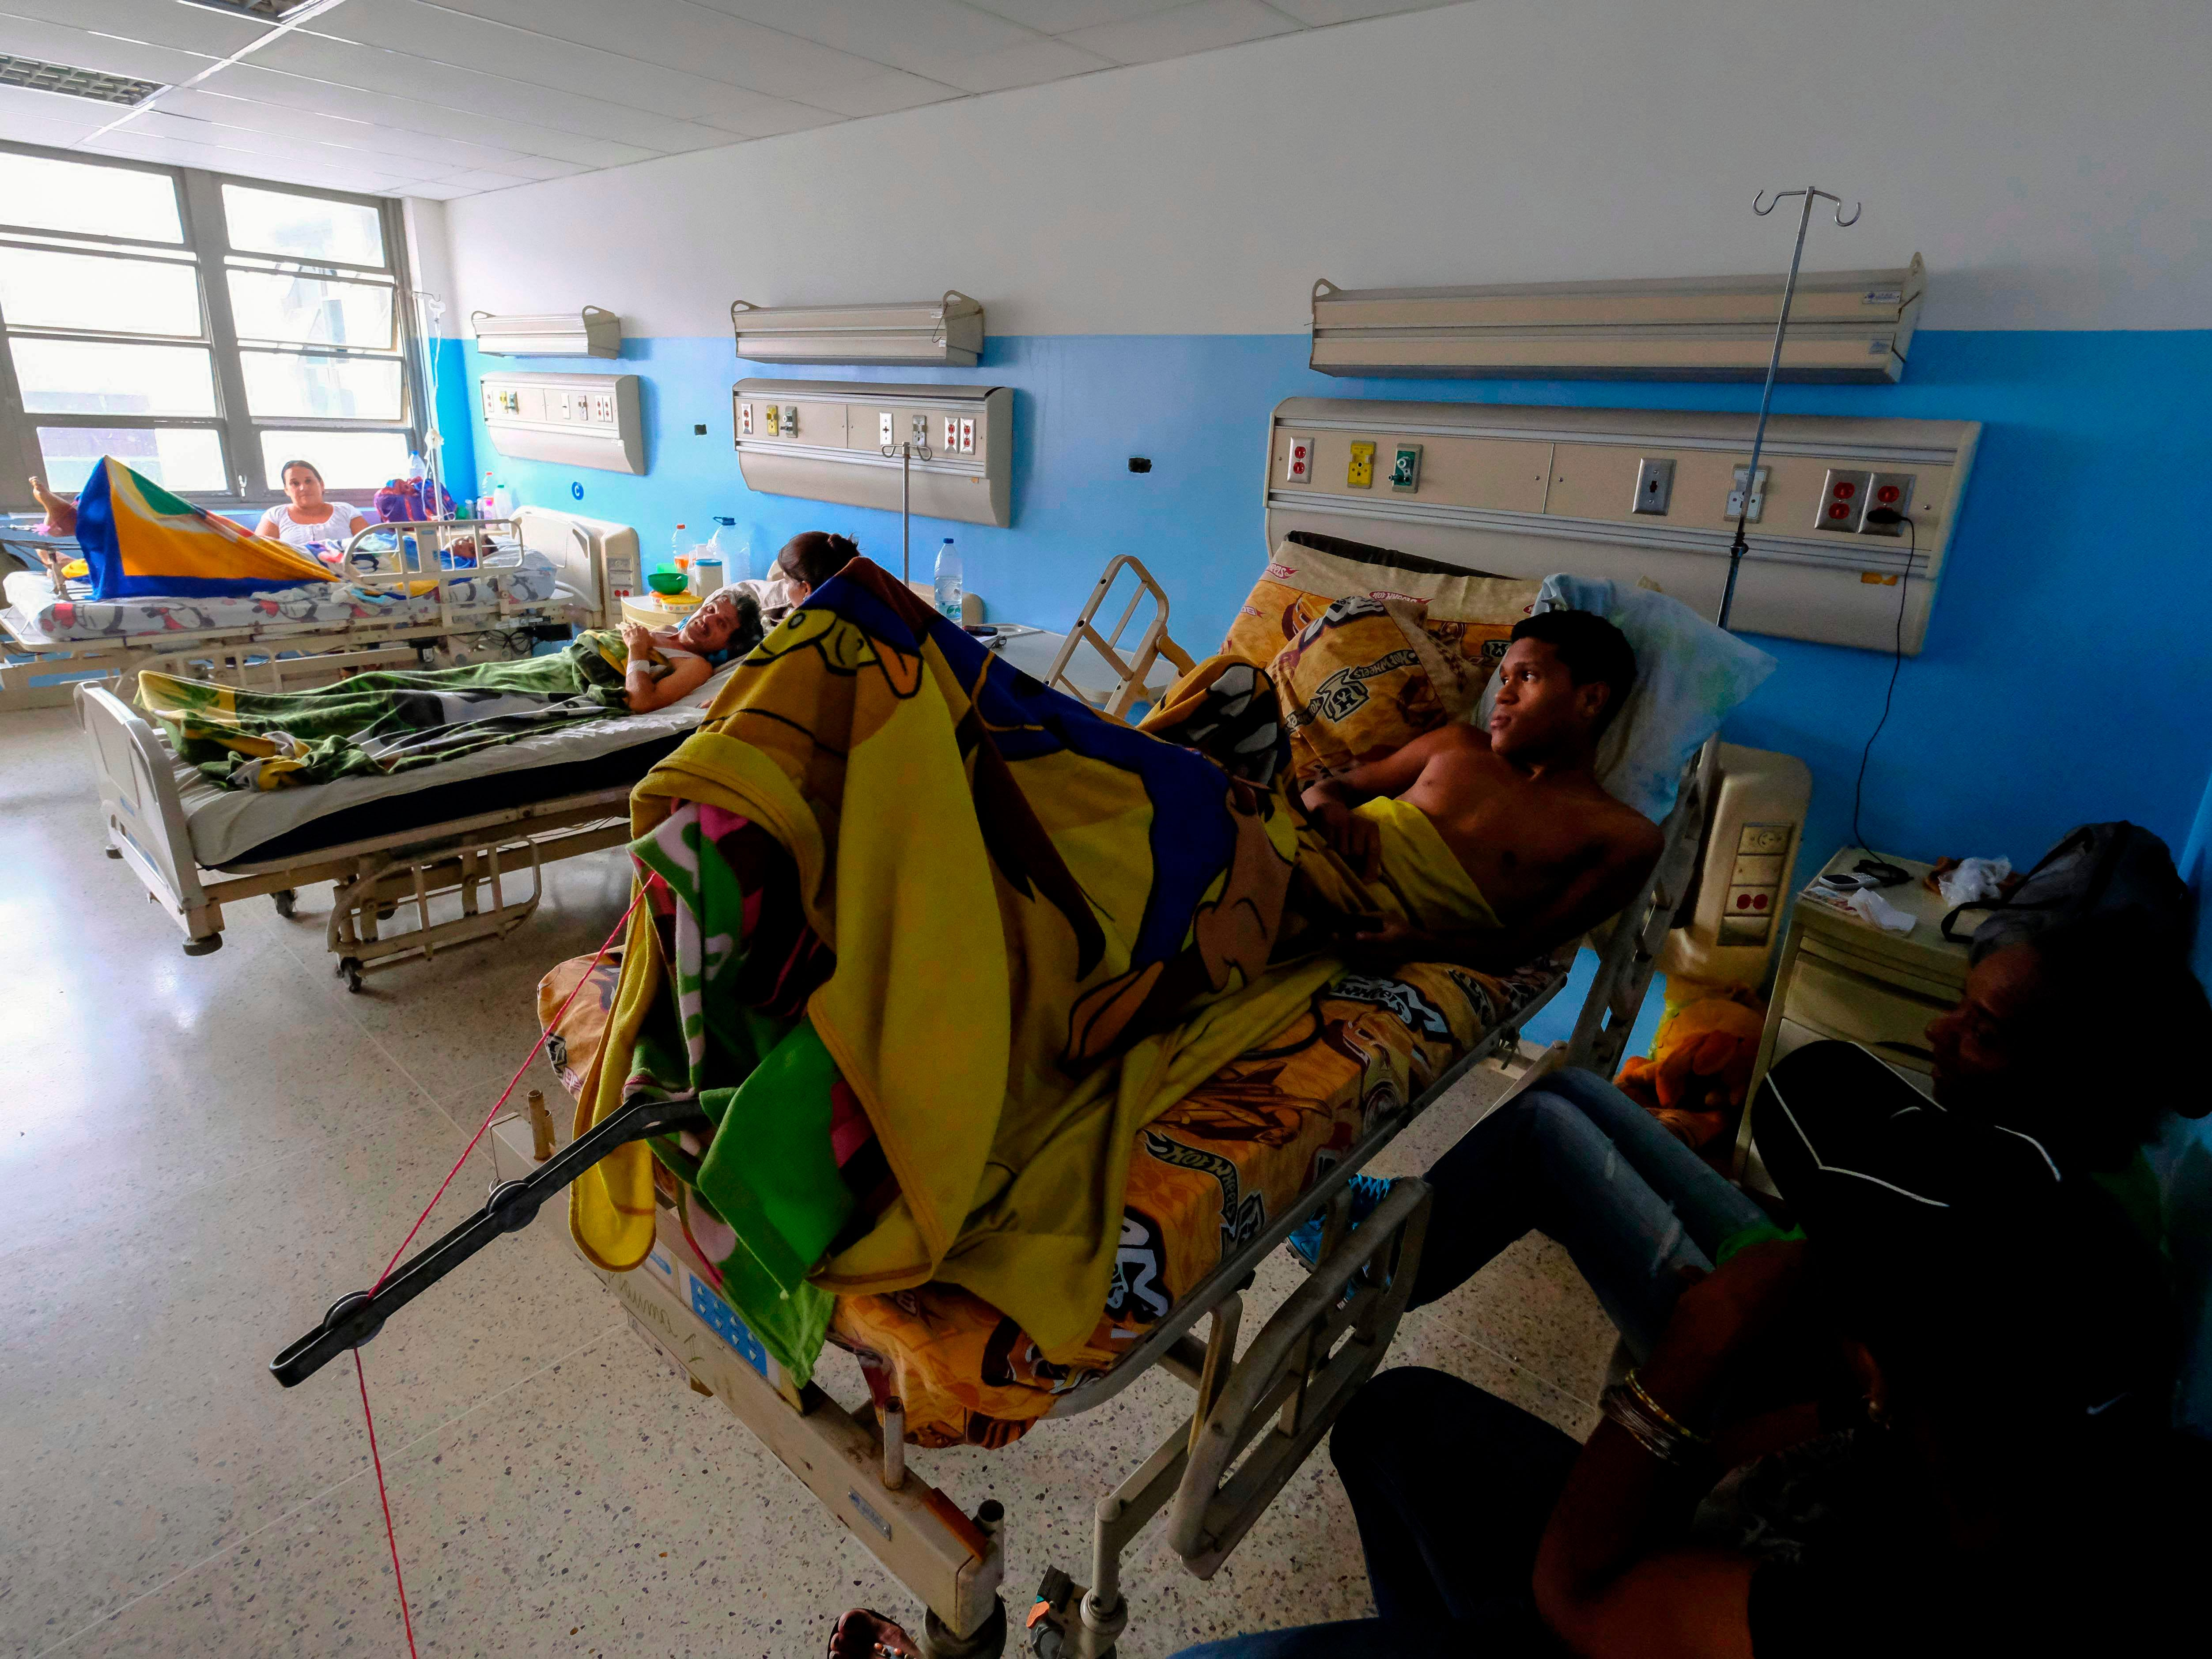 Patients lay on their beds at Miguel Perez Carreno hospital, in Caracas, during the worst power outage in Venezuela's history, on March 8, 2019.